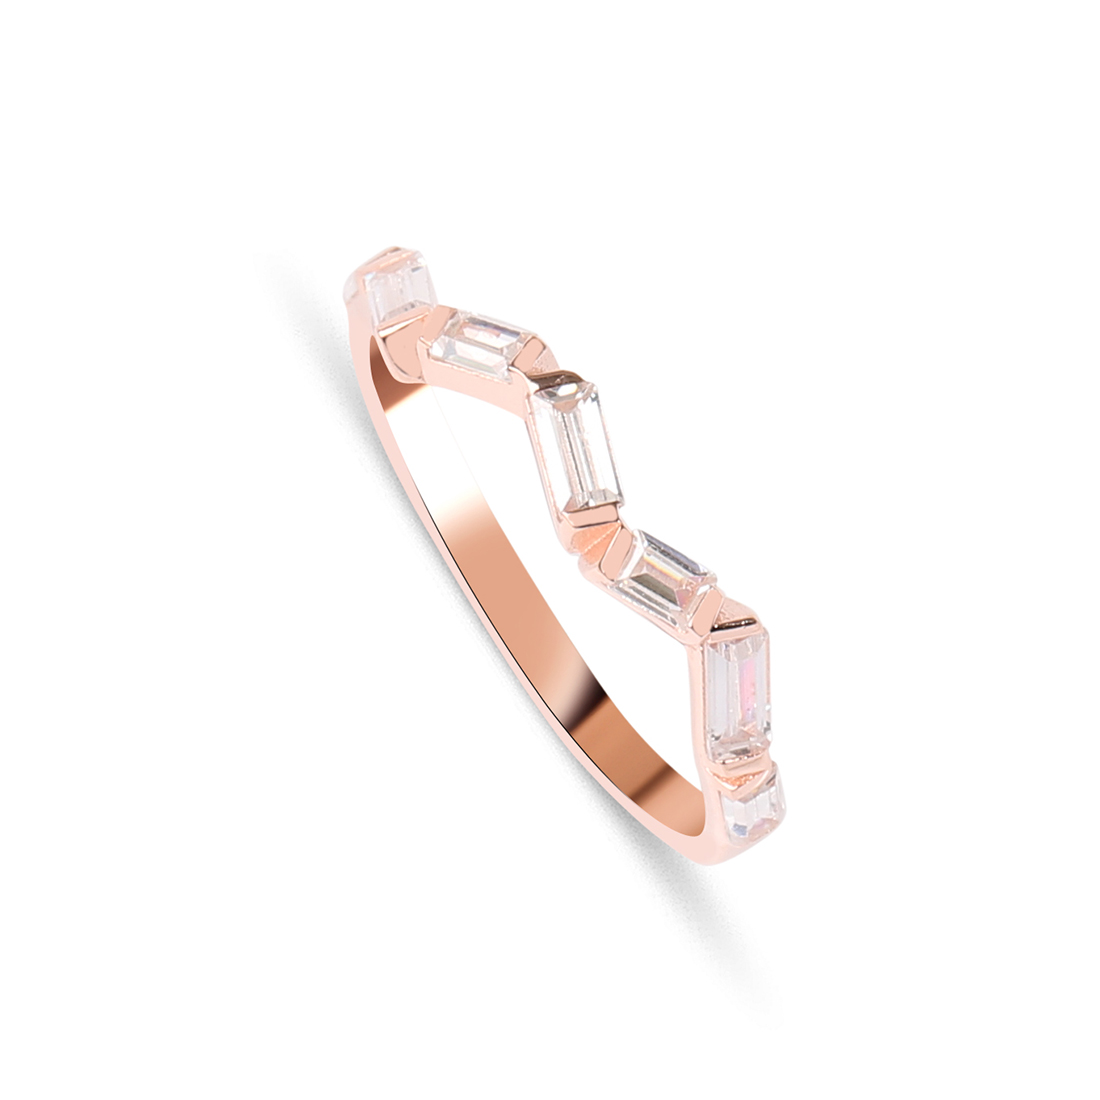 Zigzag Rose Ring - High Street Jewelry